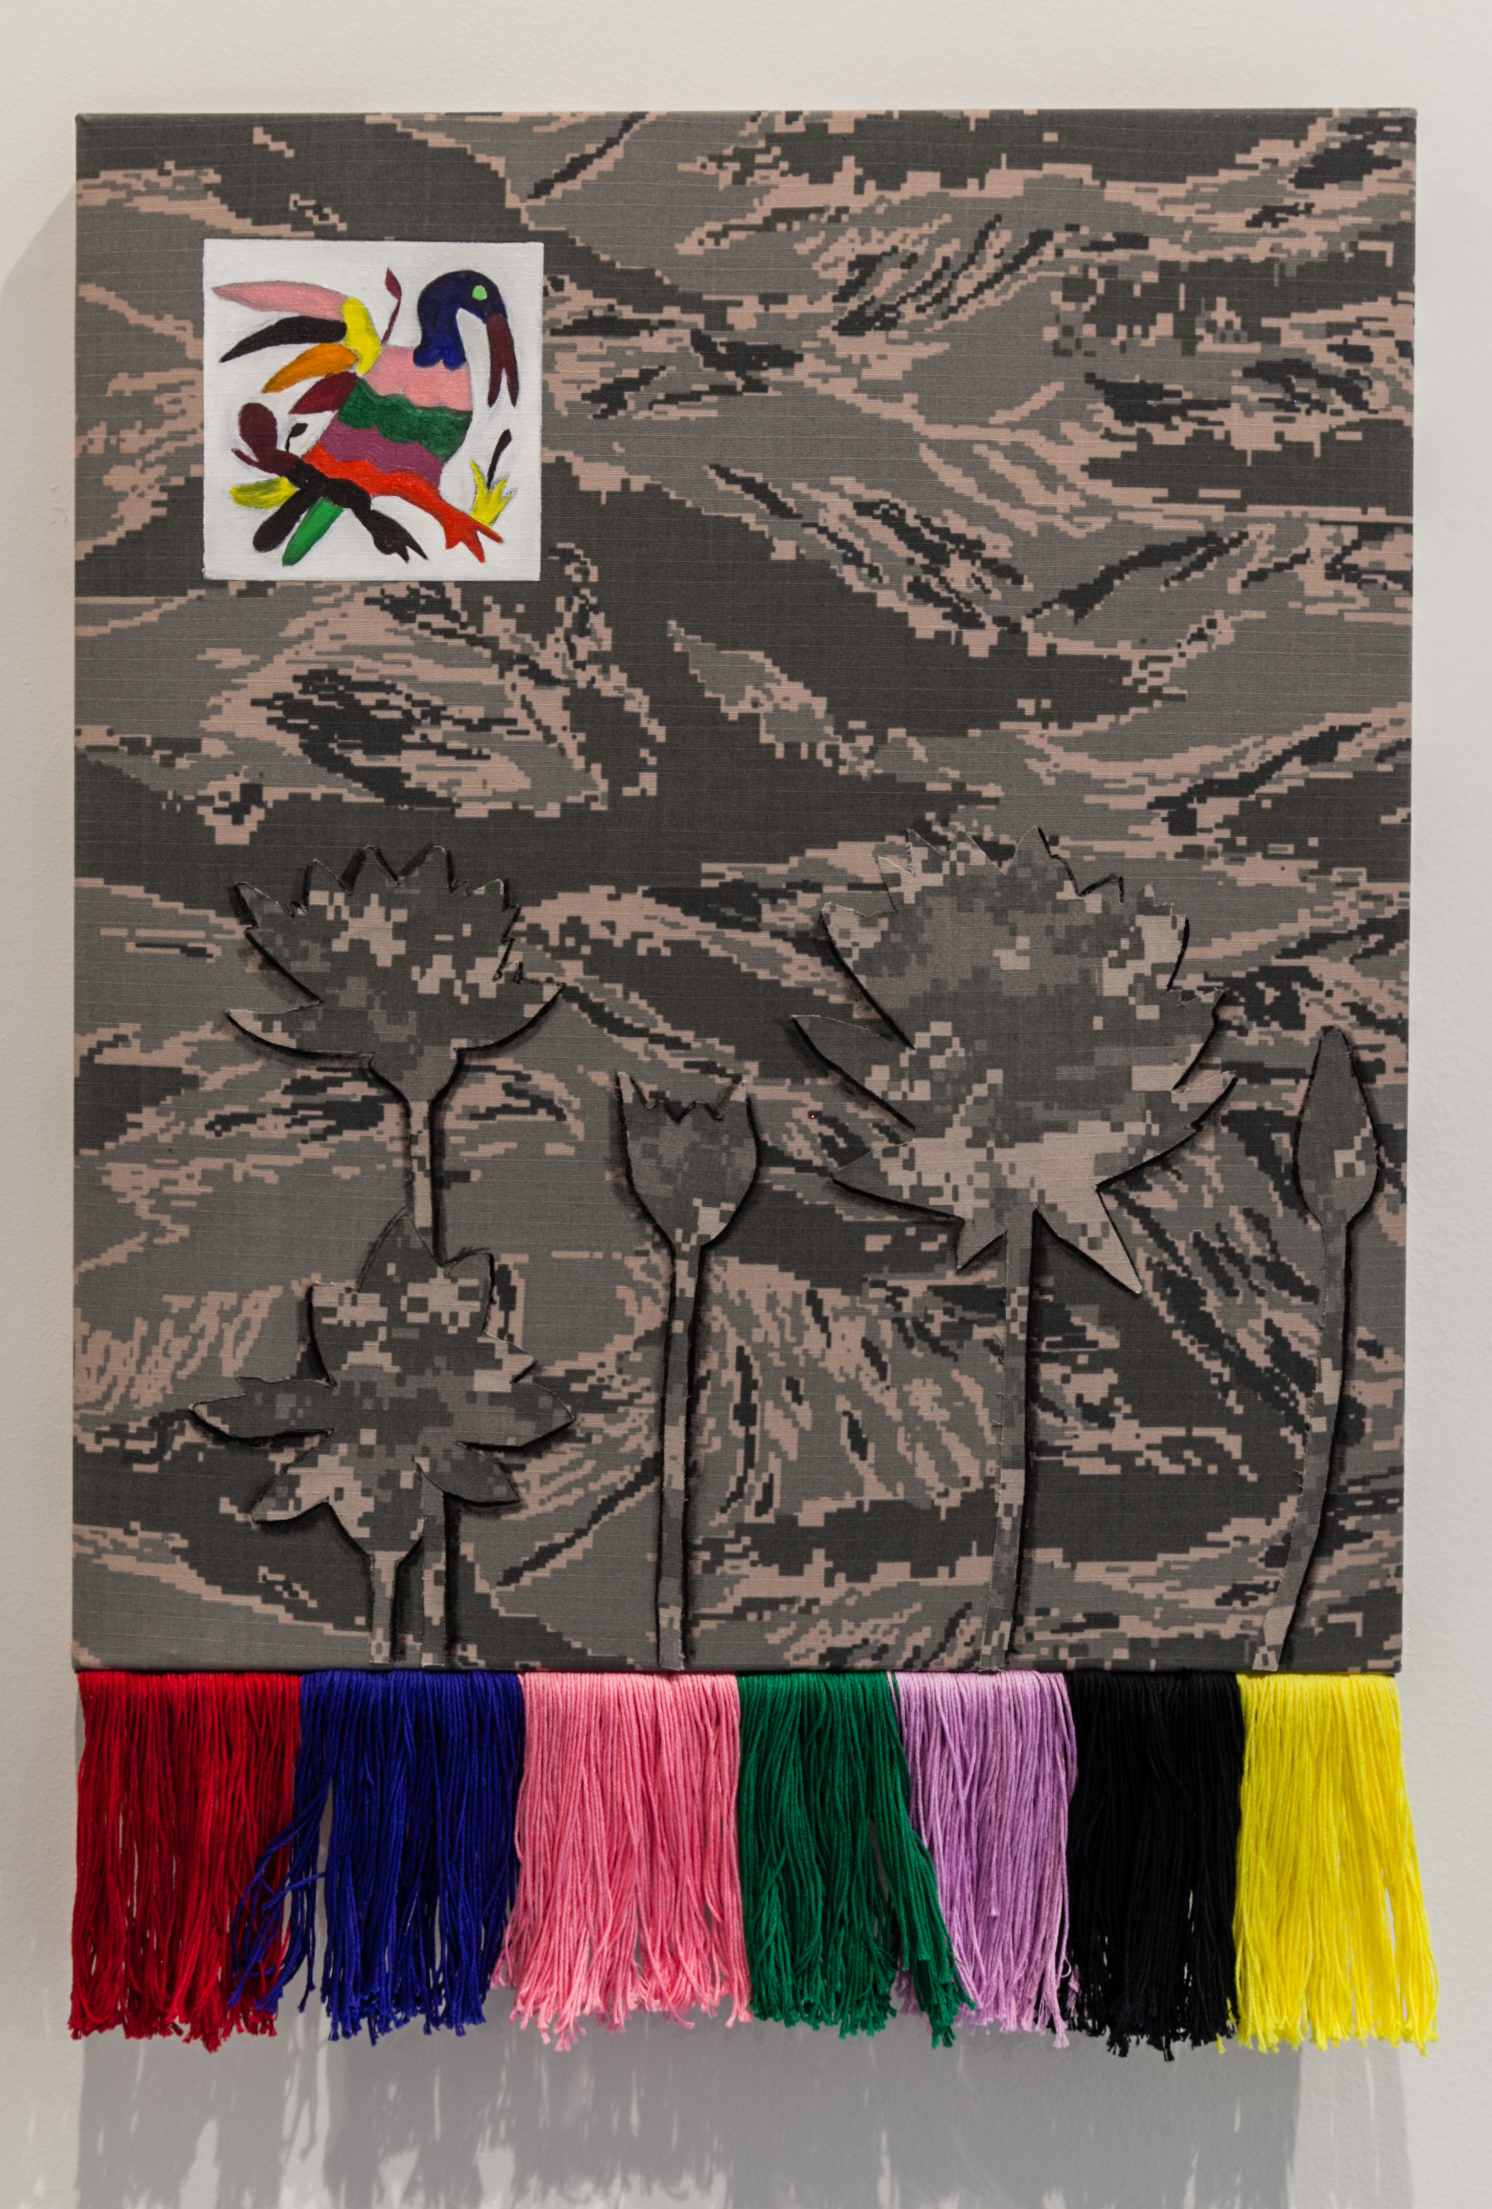 Erick Antonio Benitez (Baltimore, MD)   Half the Gradient Hugs the Wall , 2018  Medium: Oil, acrylic, and embroidery on stretched camouflage fabric  Dimensions: 24x17 inches